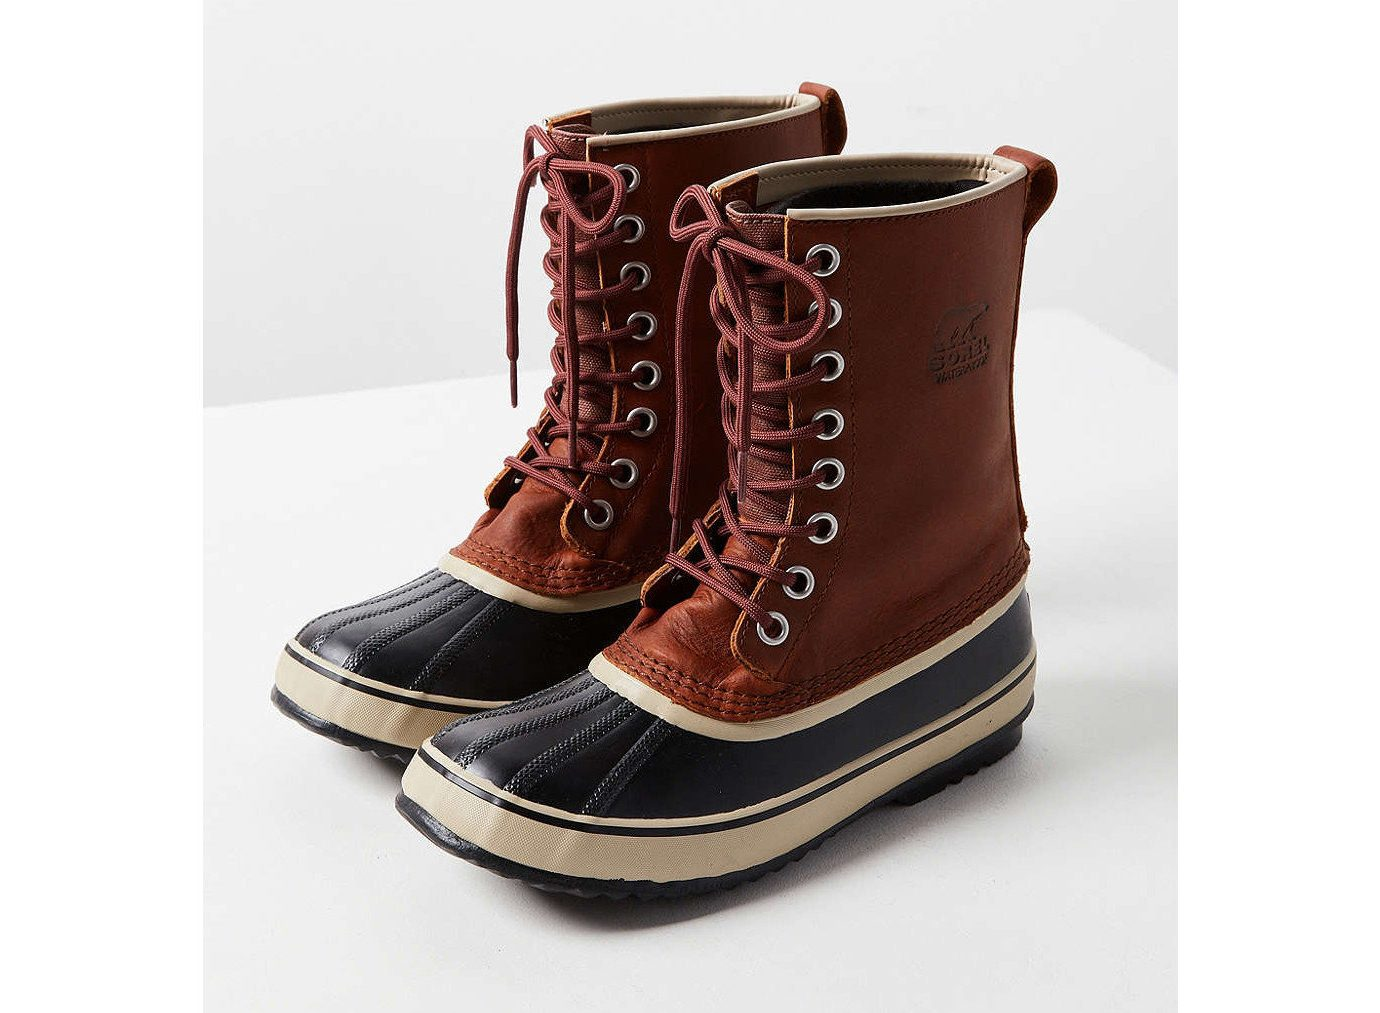 Style + Design Travel Shop footwear clothing boot shoe brown product snow boot feet